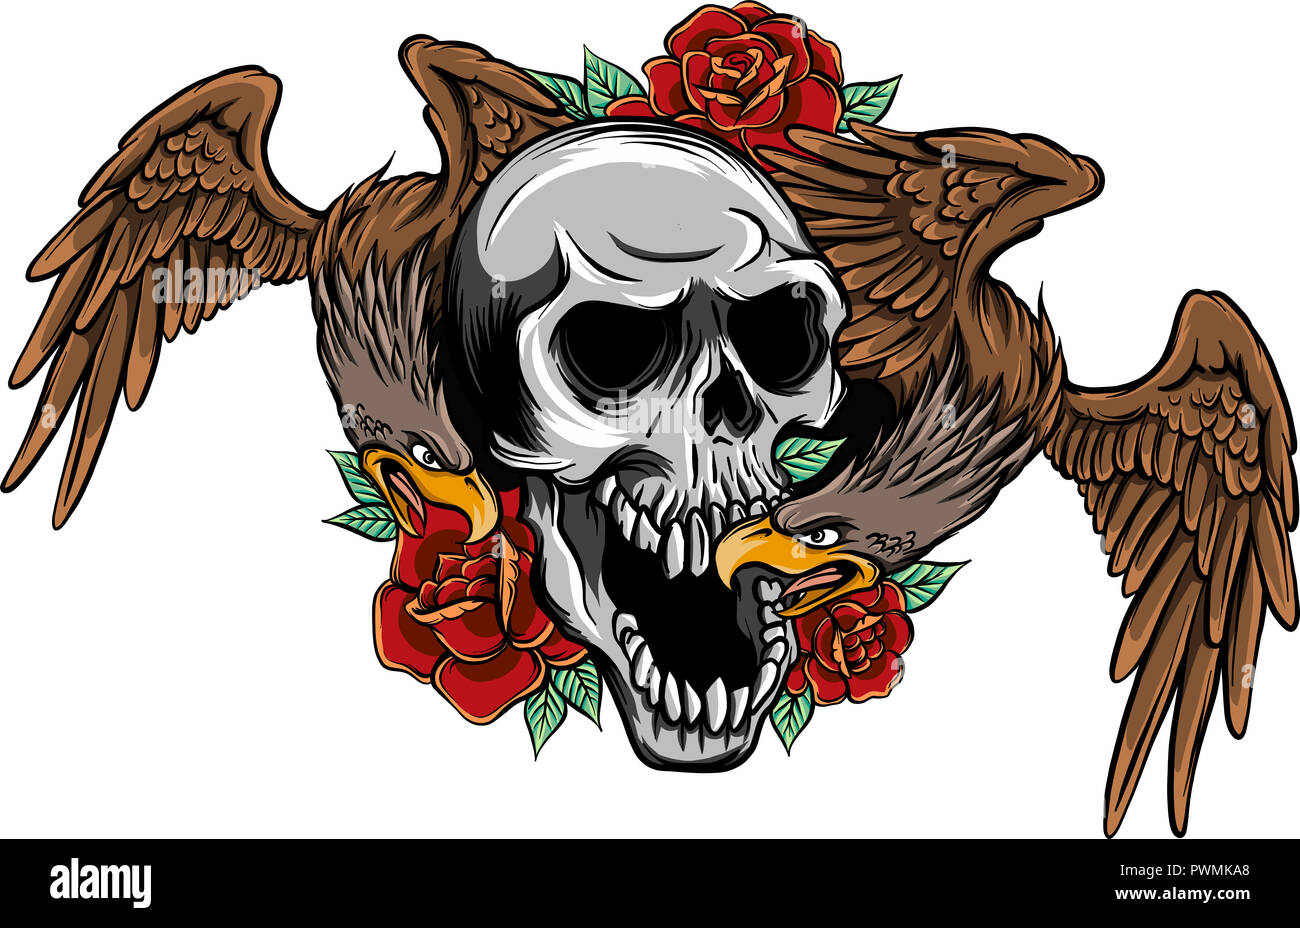 illustration two Eagles and Skull with roses - Stock Image